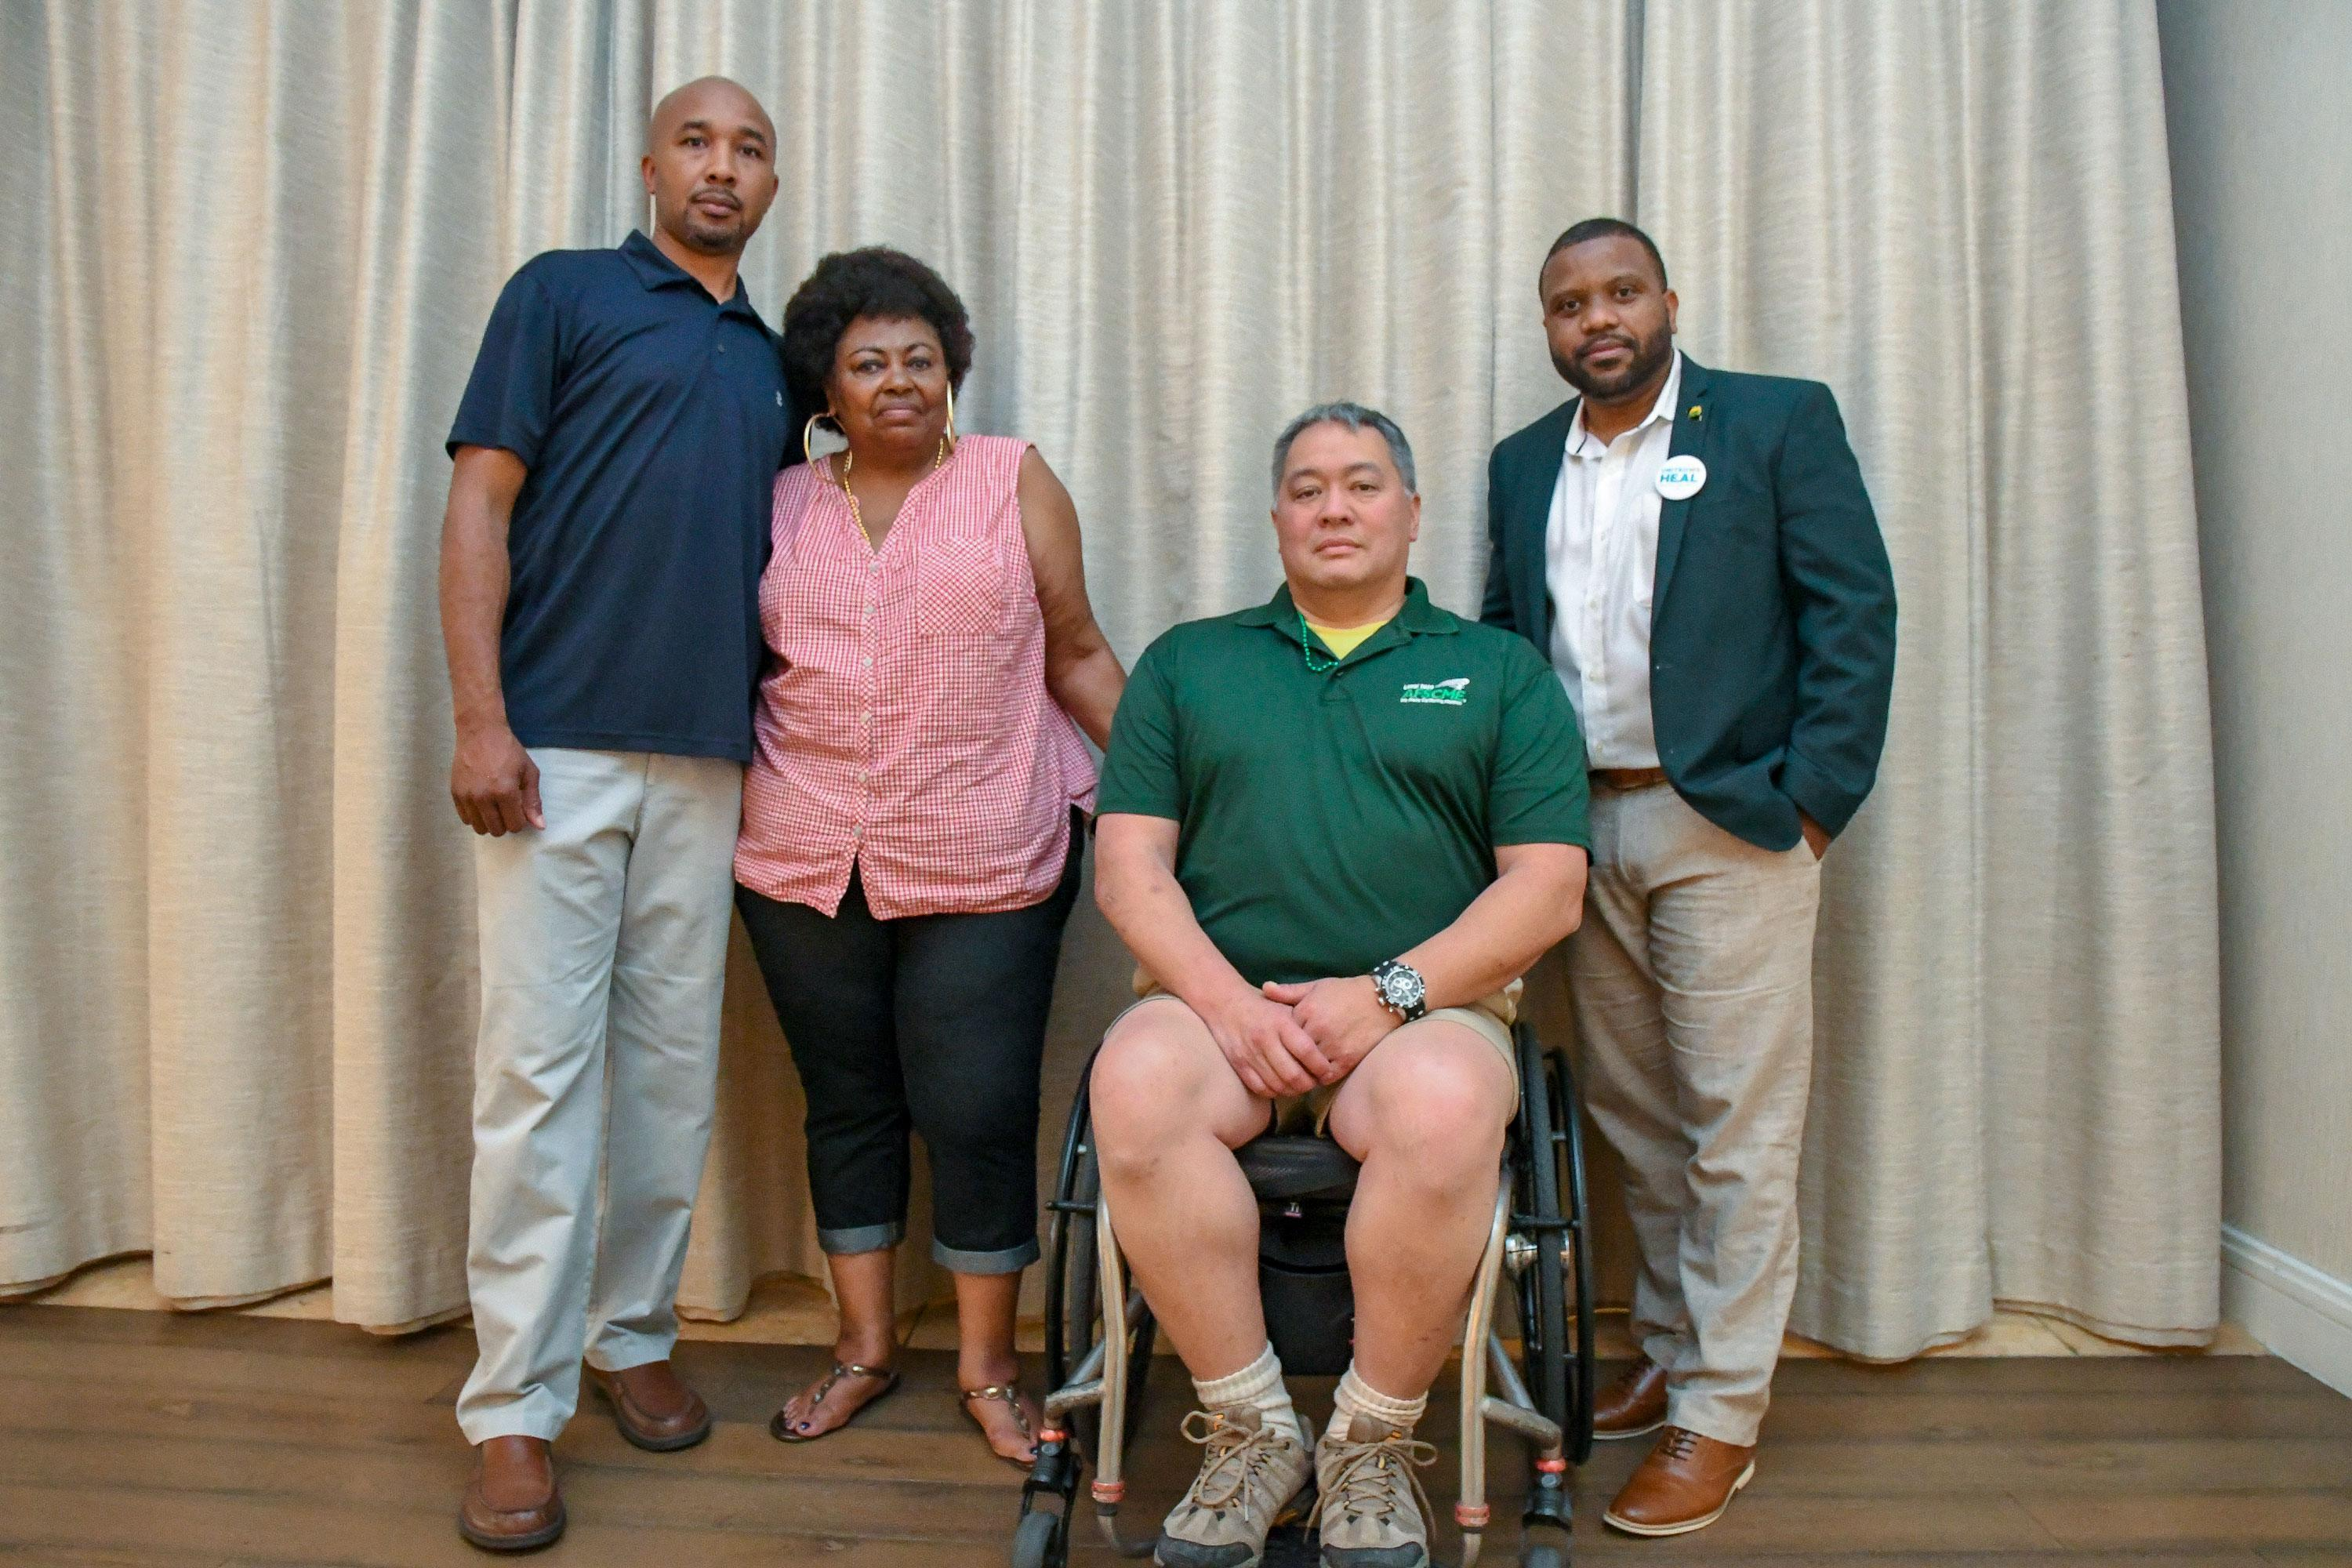 Members of the California State Prison-Lancaster Chapter of AFSCME Local 2620 with Local 2620 board members